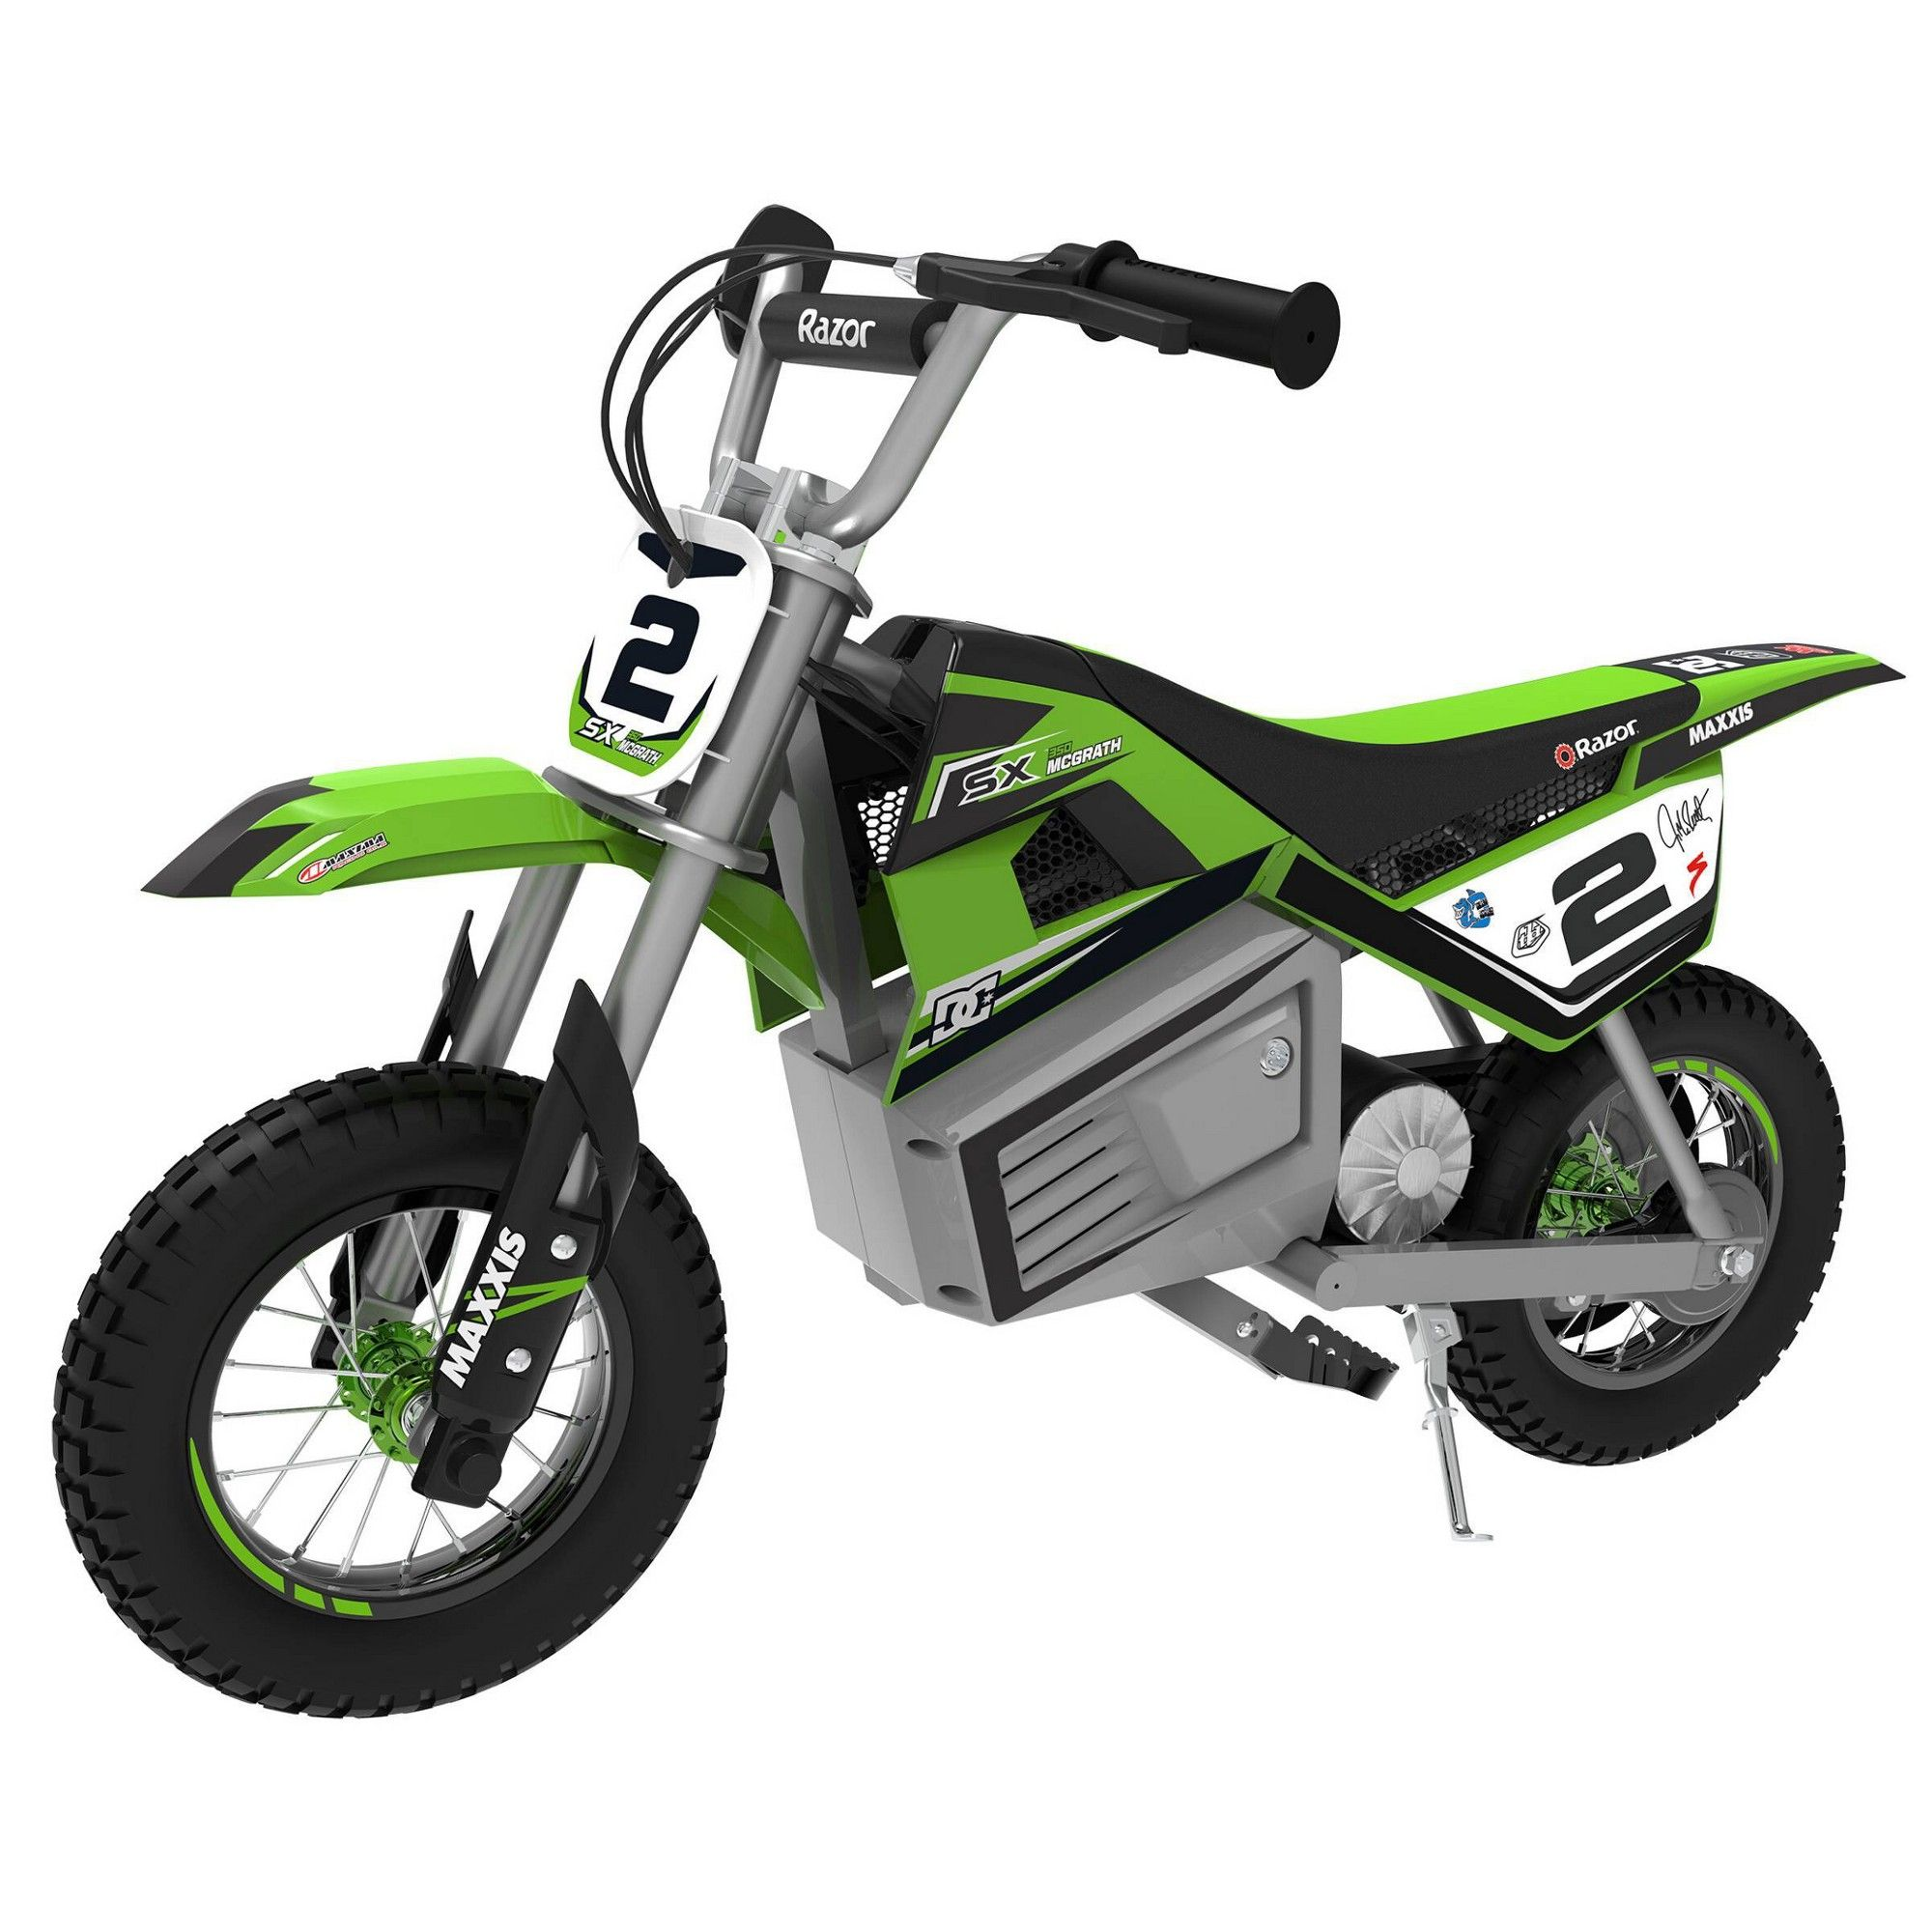 Razor Sx350 Dirt Rocket Mcgrath Electric Motocross Green Electric Dirt Bike Electric Bike Cool Dirt Bikes